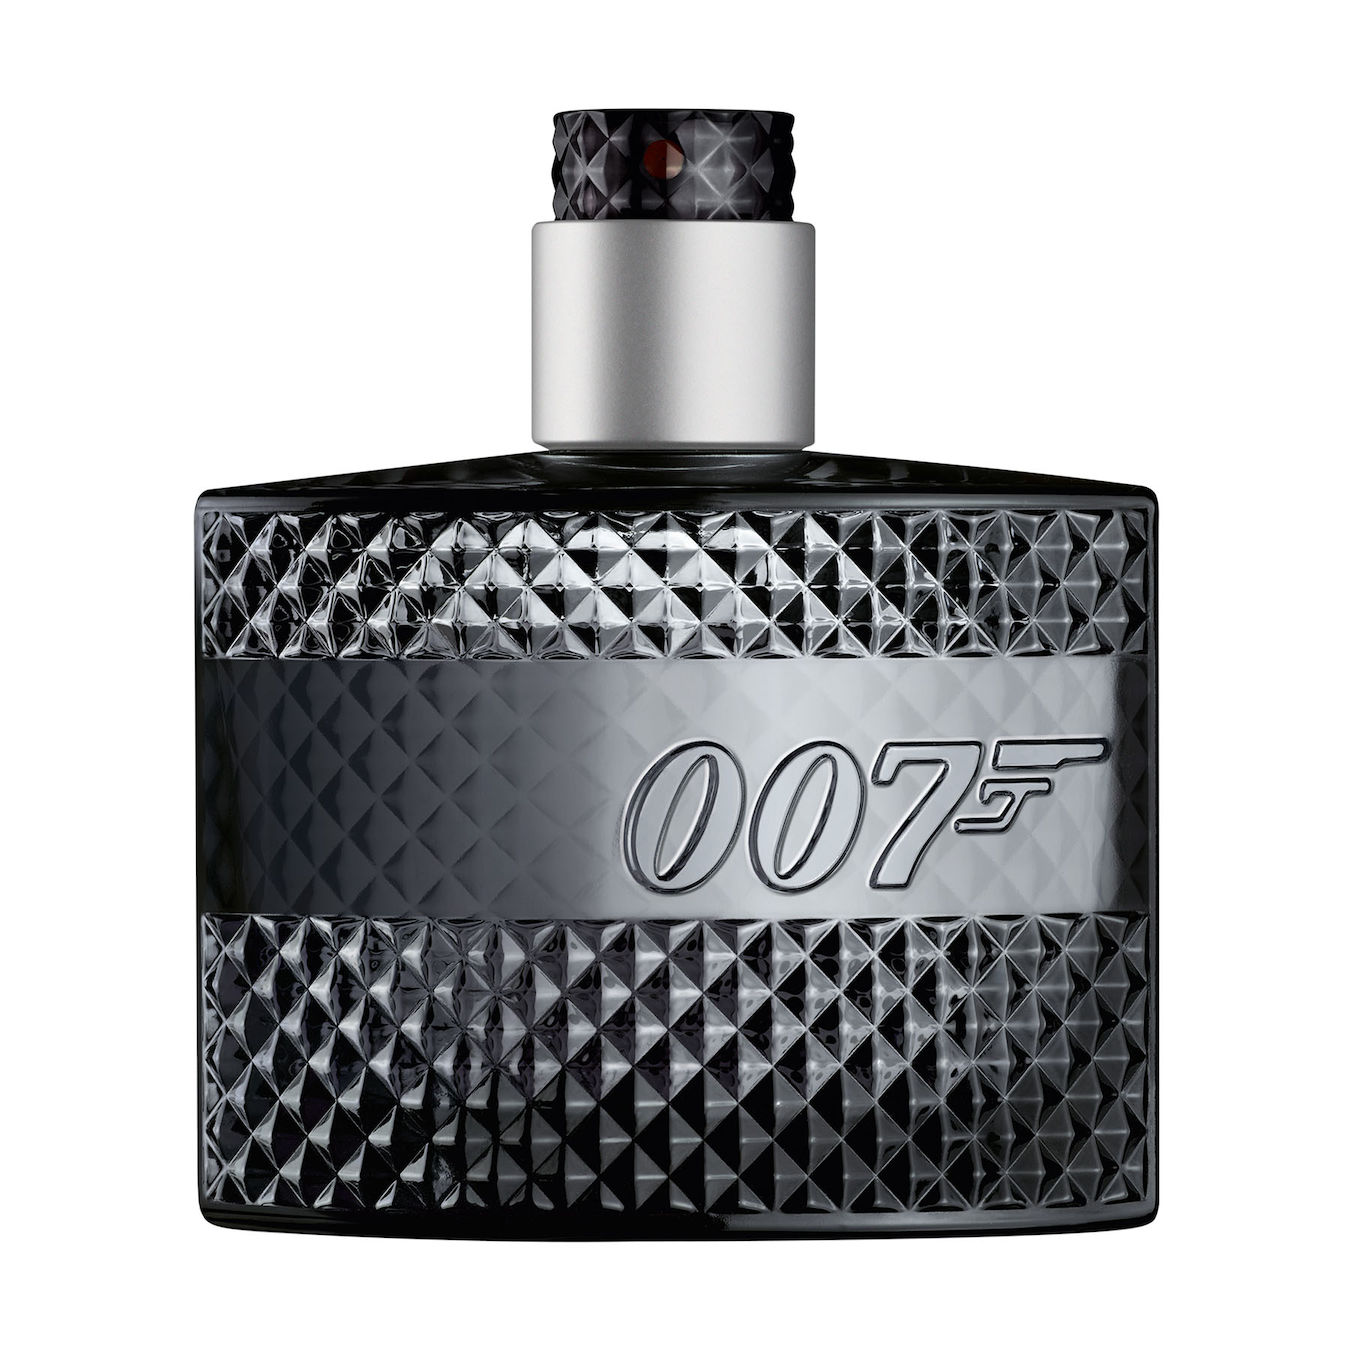 Bond 007 Ml Import M James Parfumerie Edtv 50ml50 0kPXNnwO8